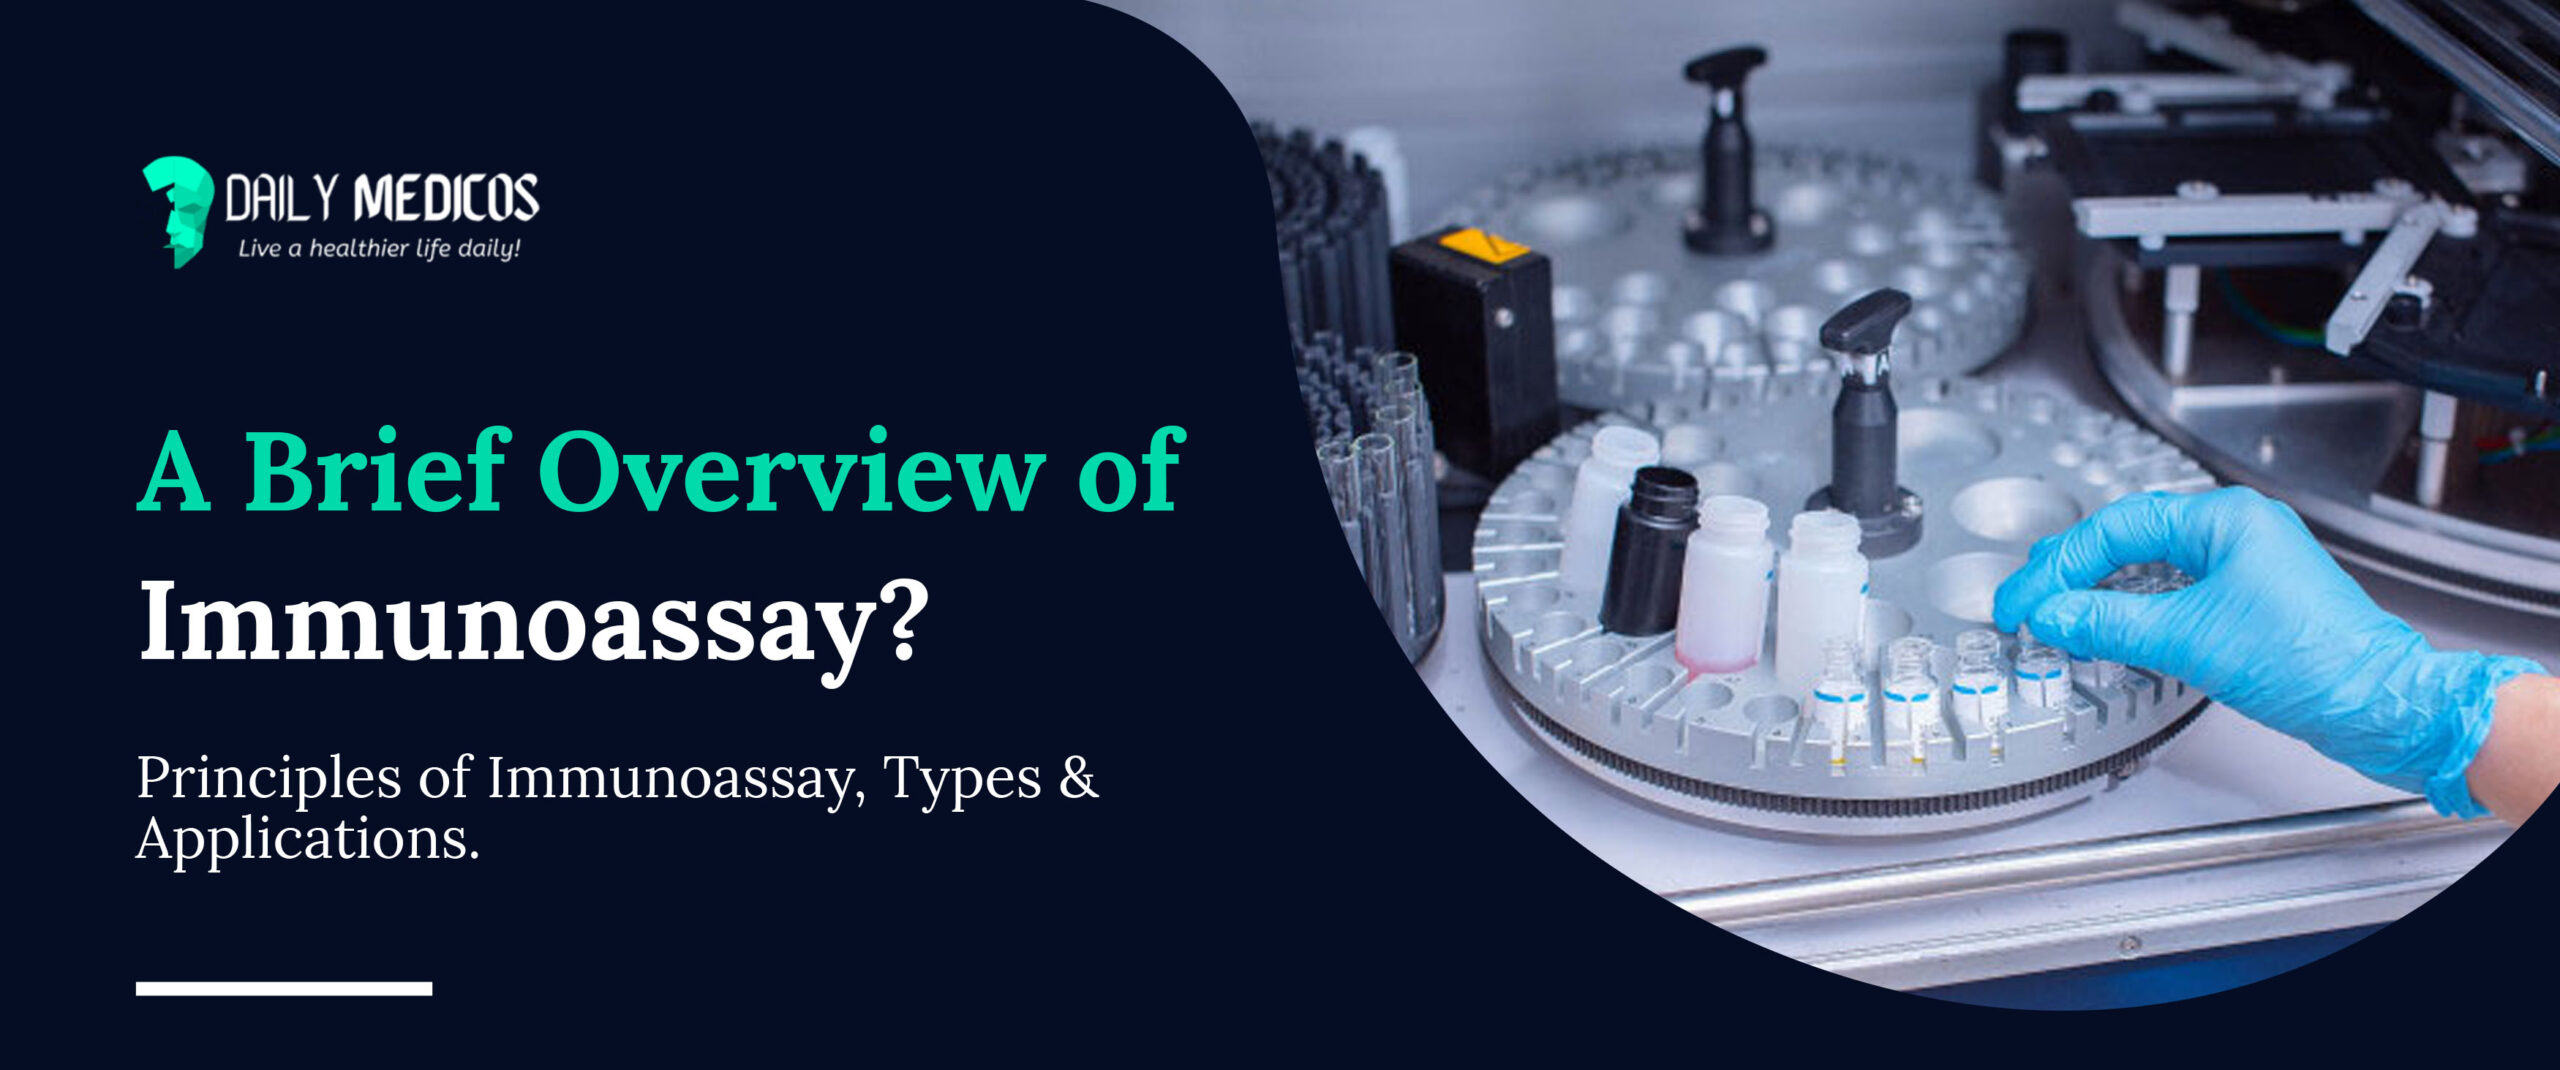 A Brief Overview of Immunoassay [Principles of Immunoassay, Types & Applications] 1 - Daily Medicos